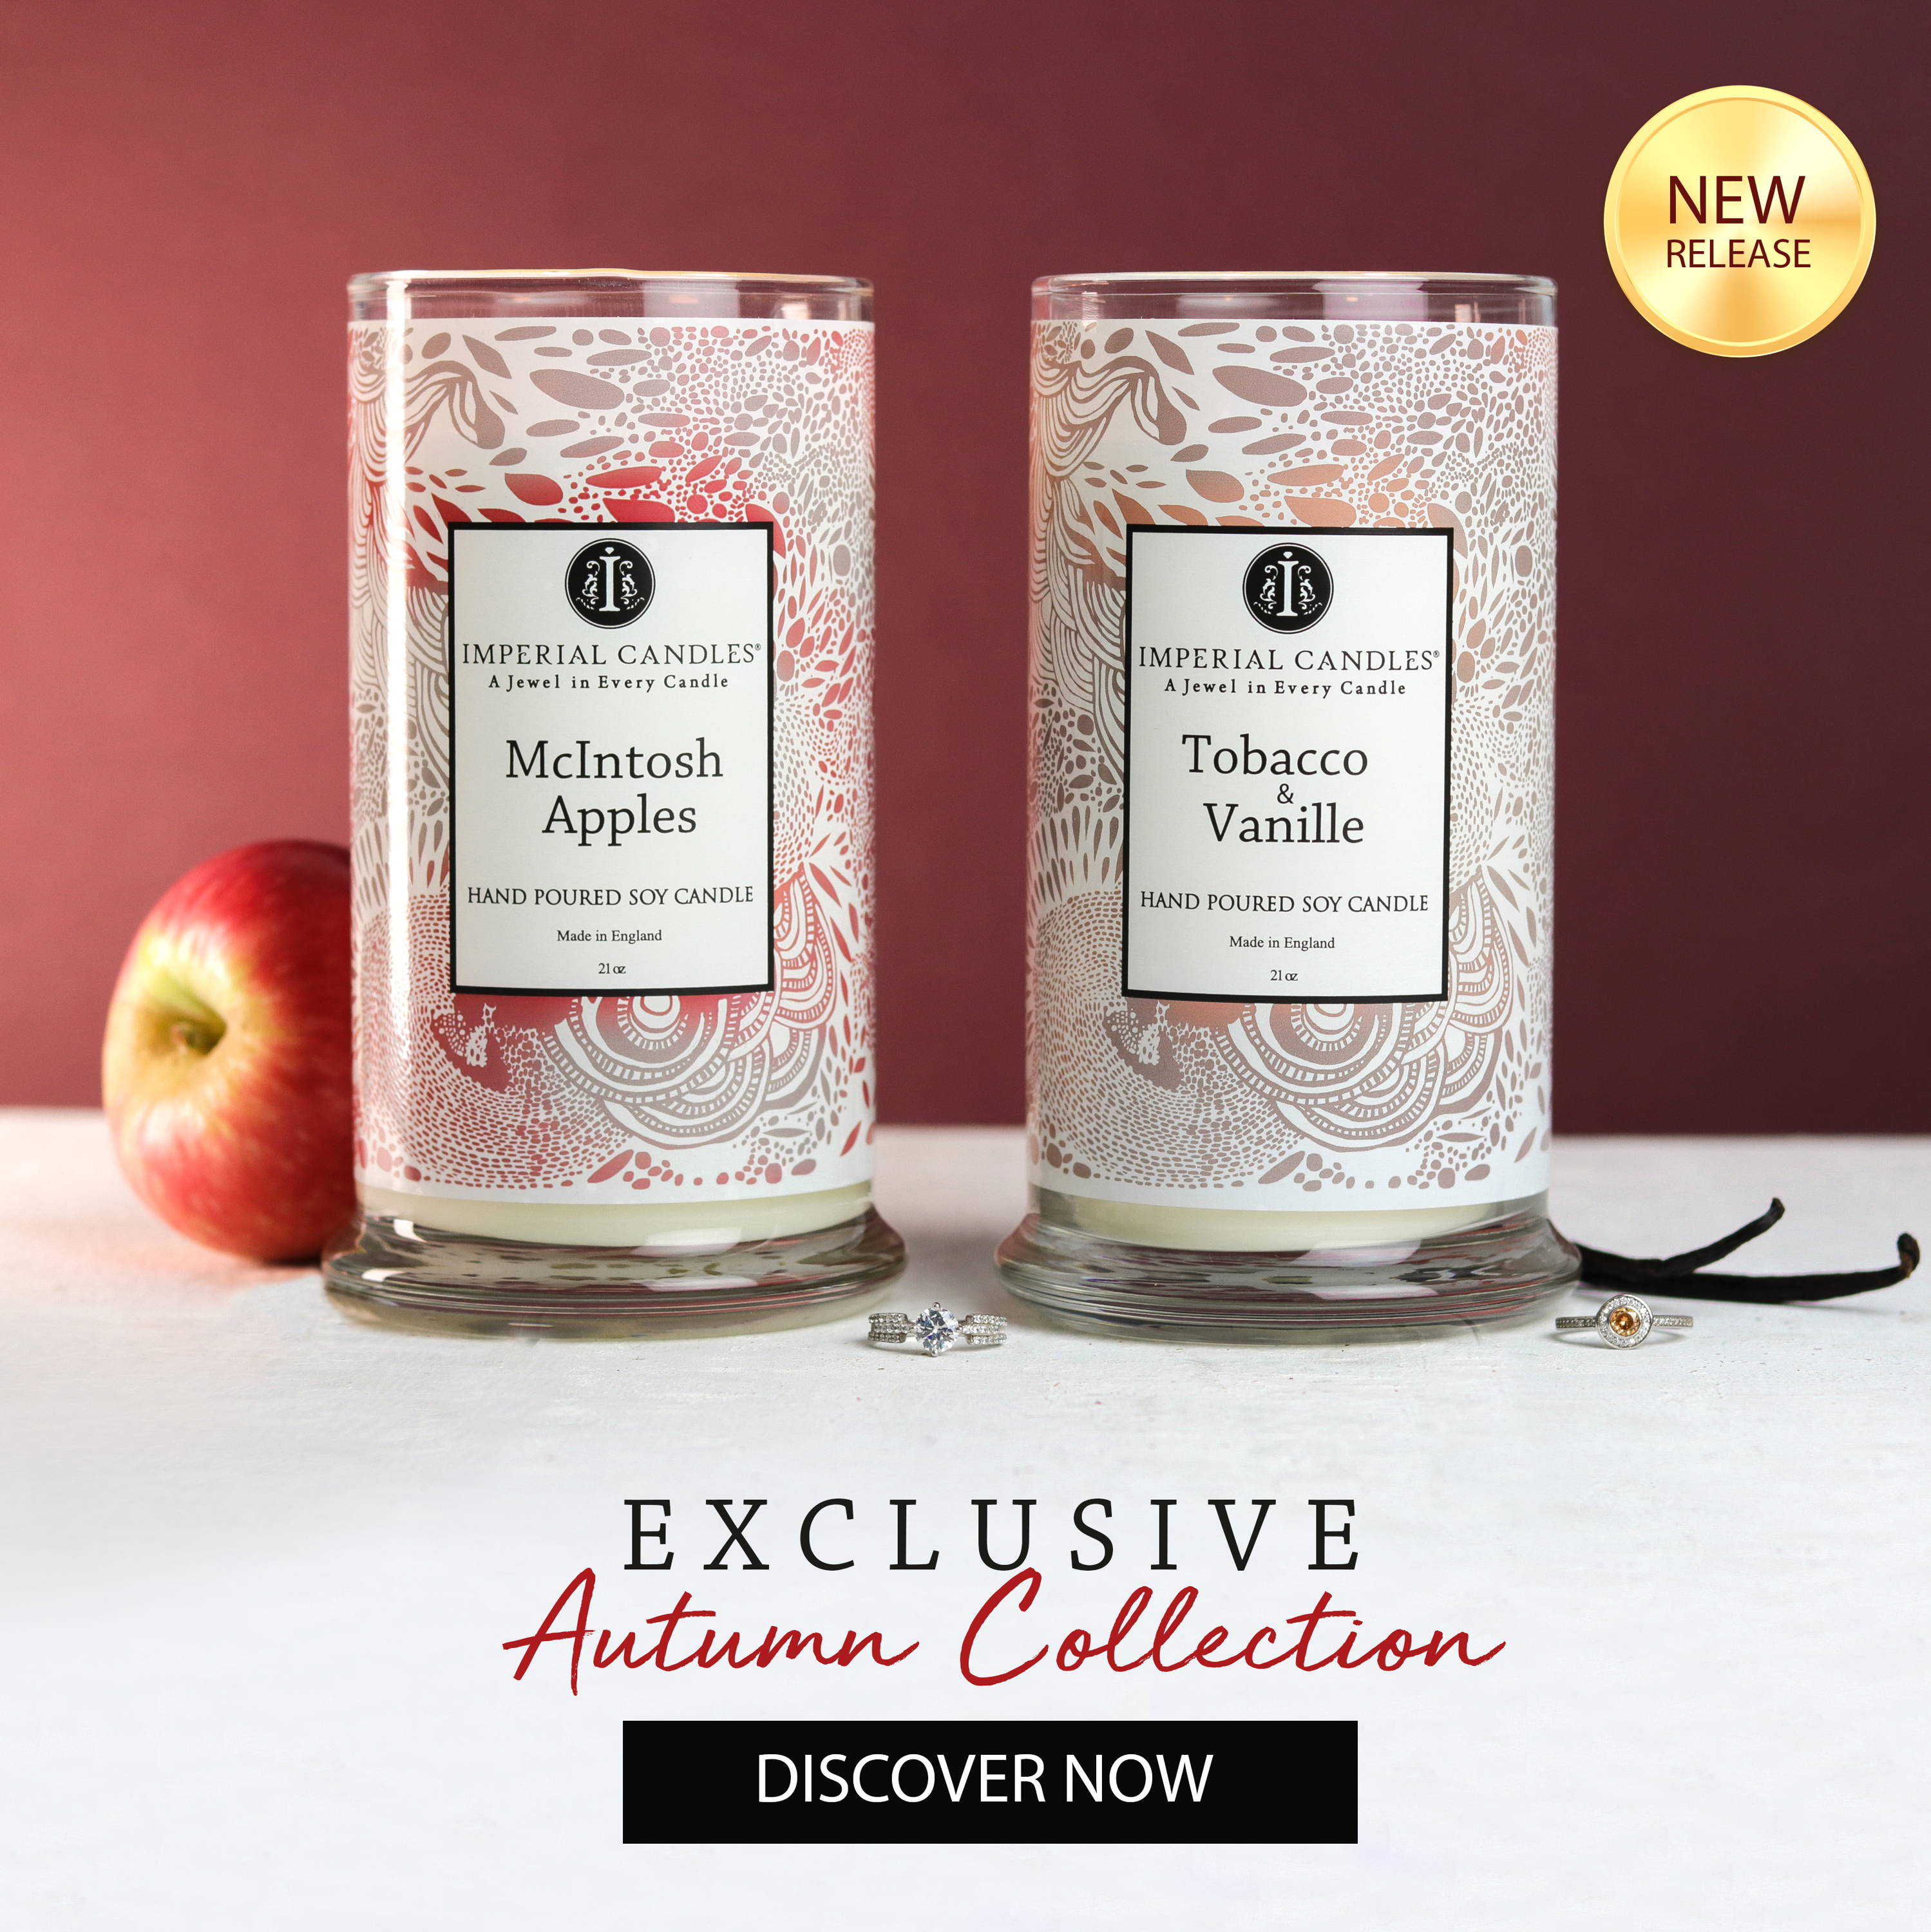 Imperial Candles - Autumn Collection